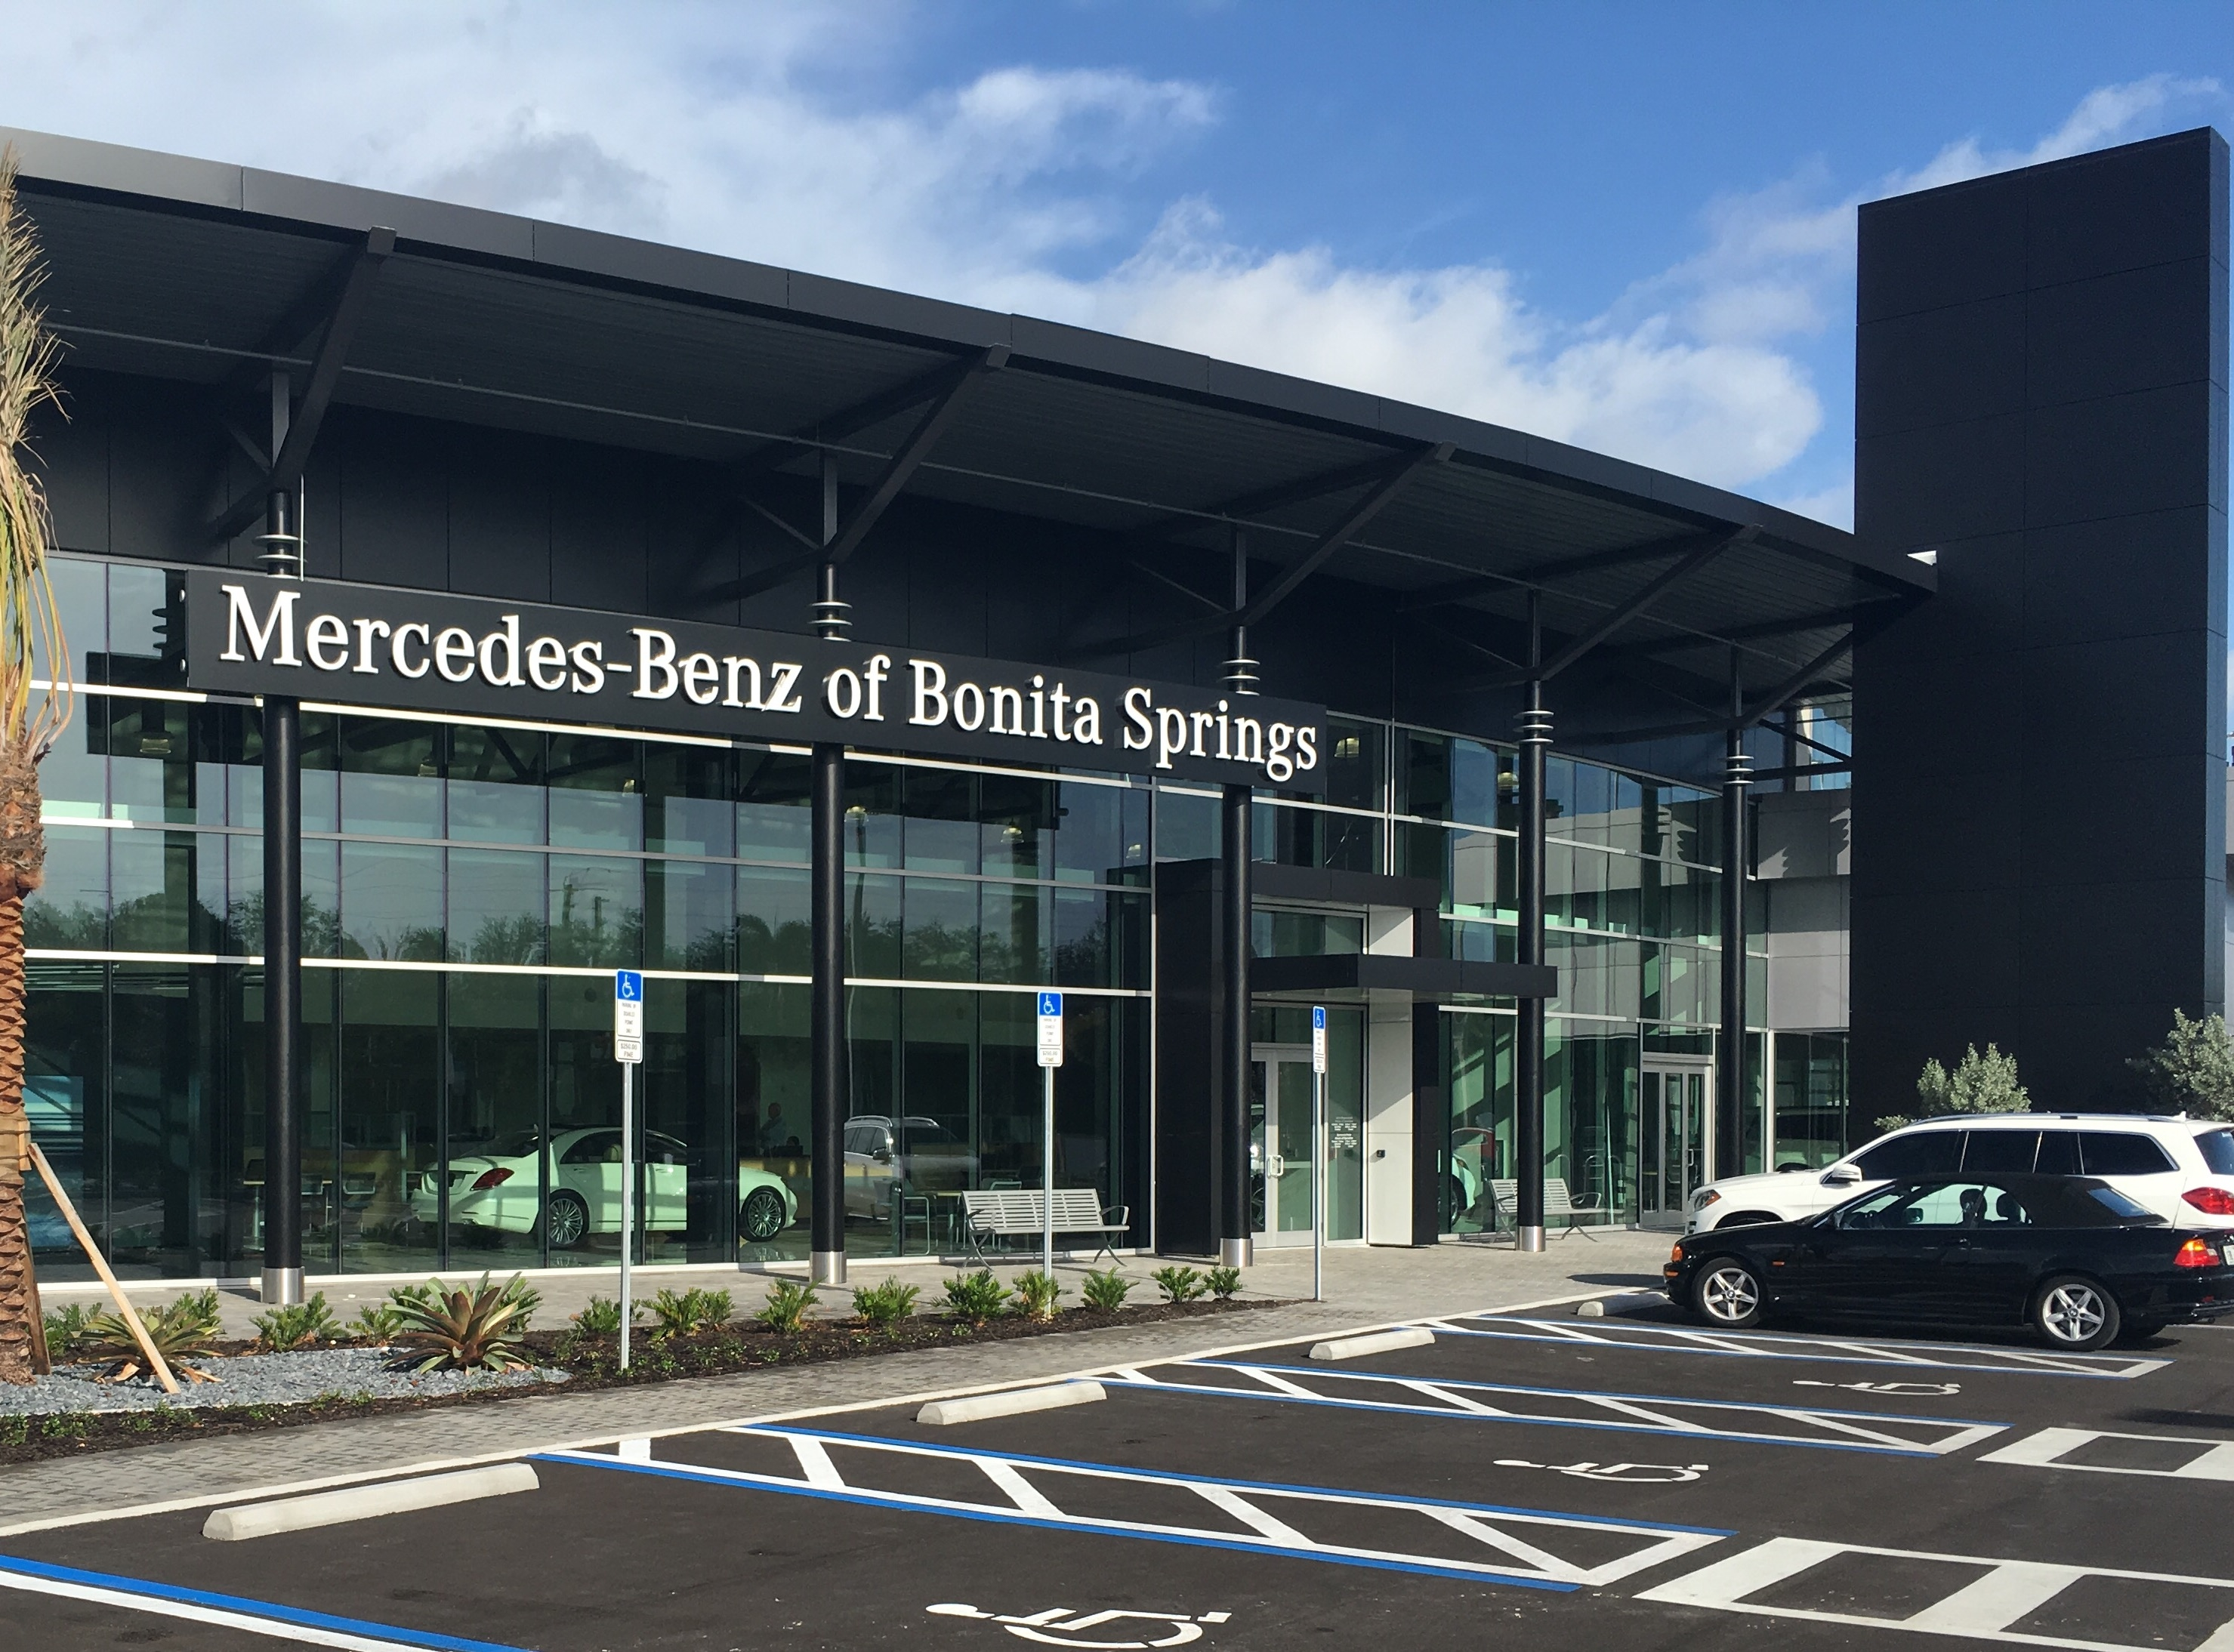 Mercedes benz of bonita springs coupons near me in naples for Mercedes benz dealer near me